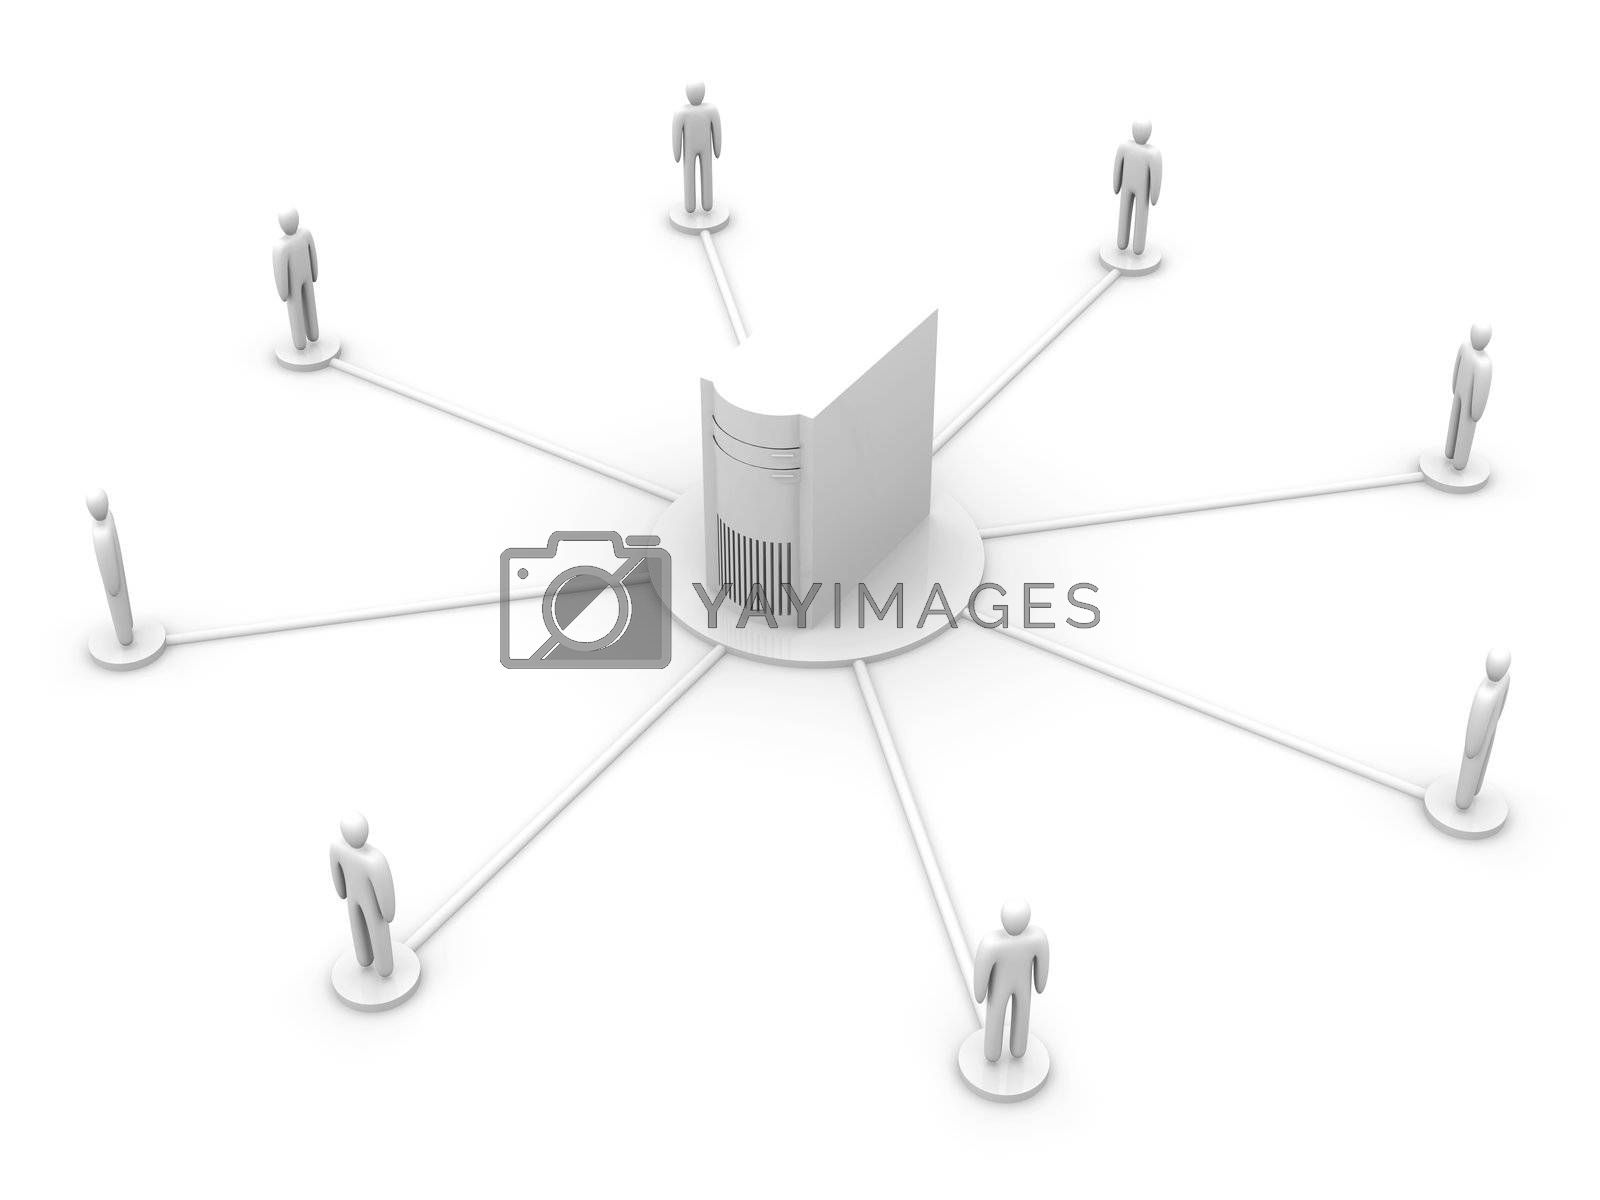 Connected People. 3D rendered illustration.